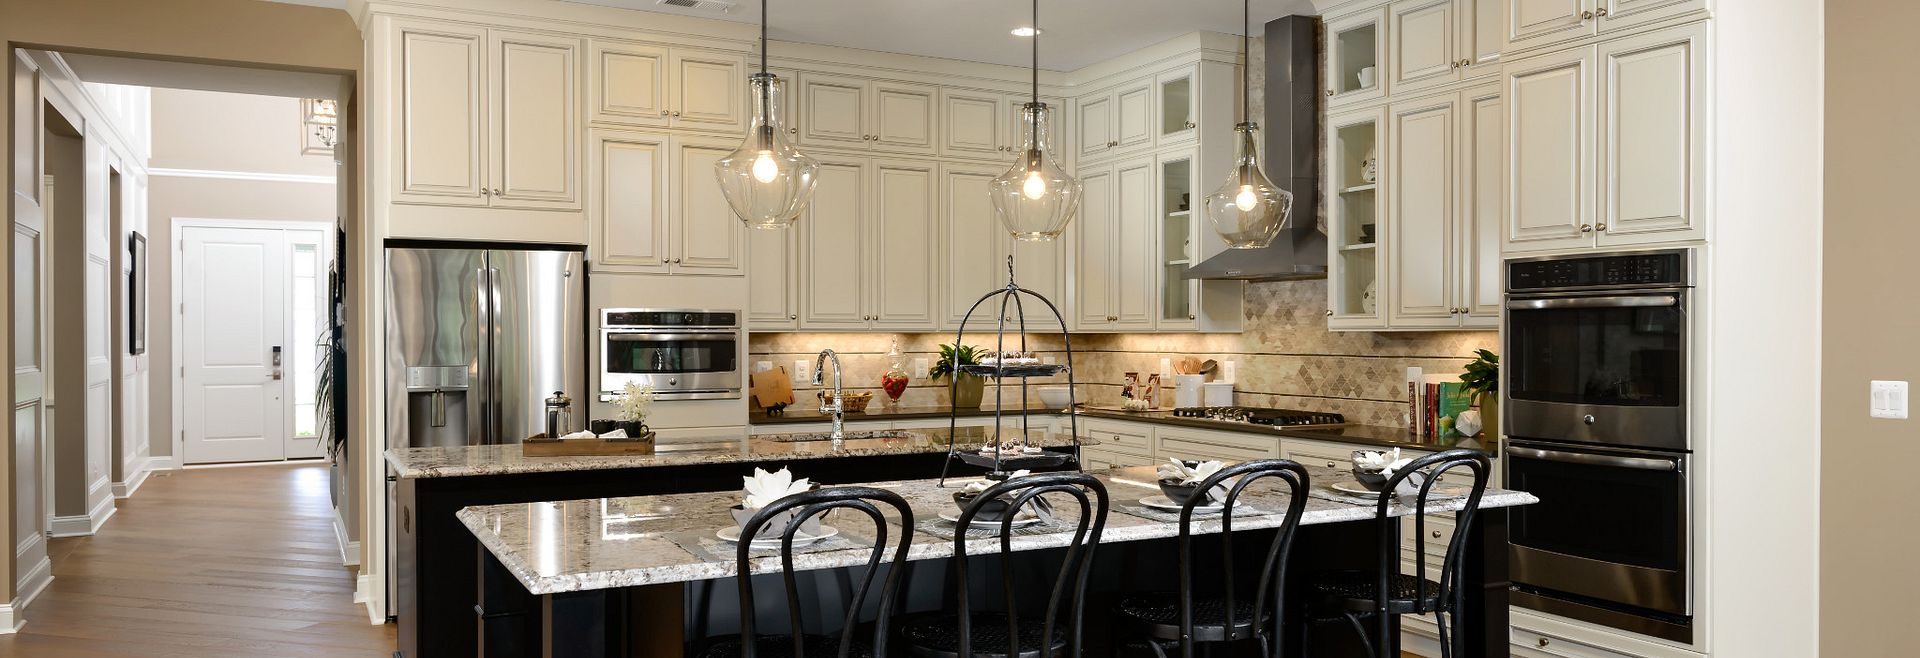 Trilogy at Lake Frederick Plan Engage Kitchen